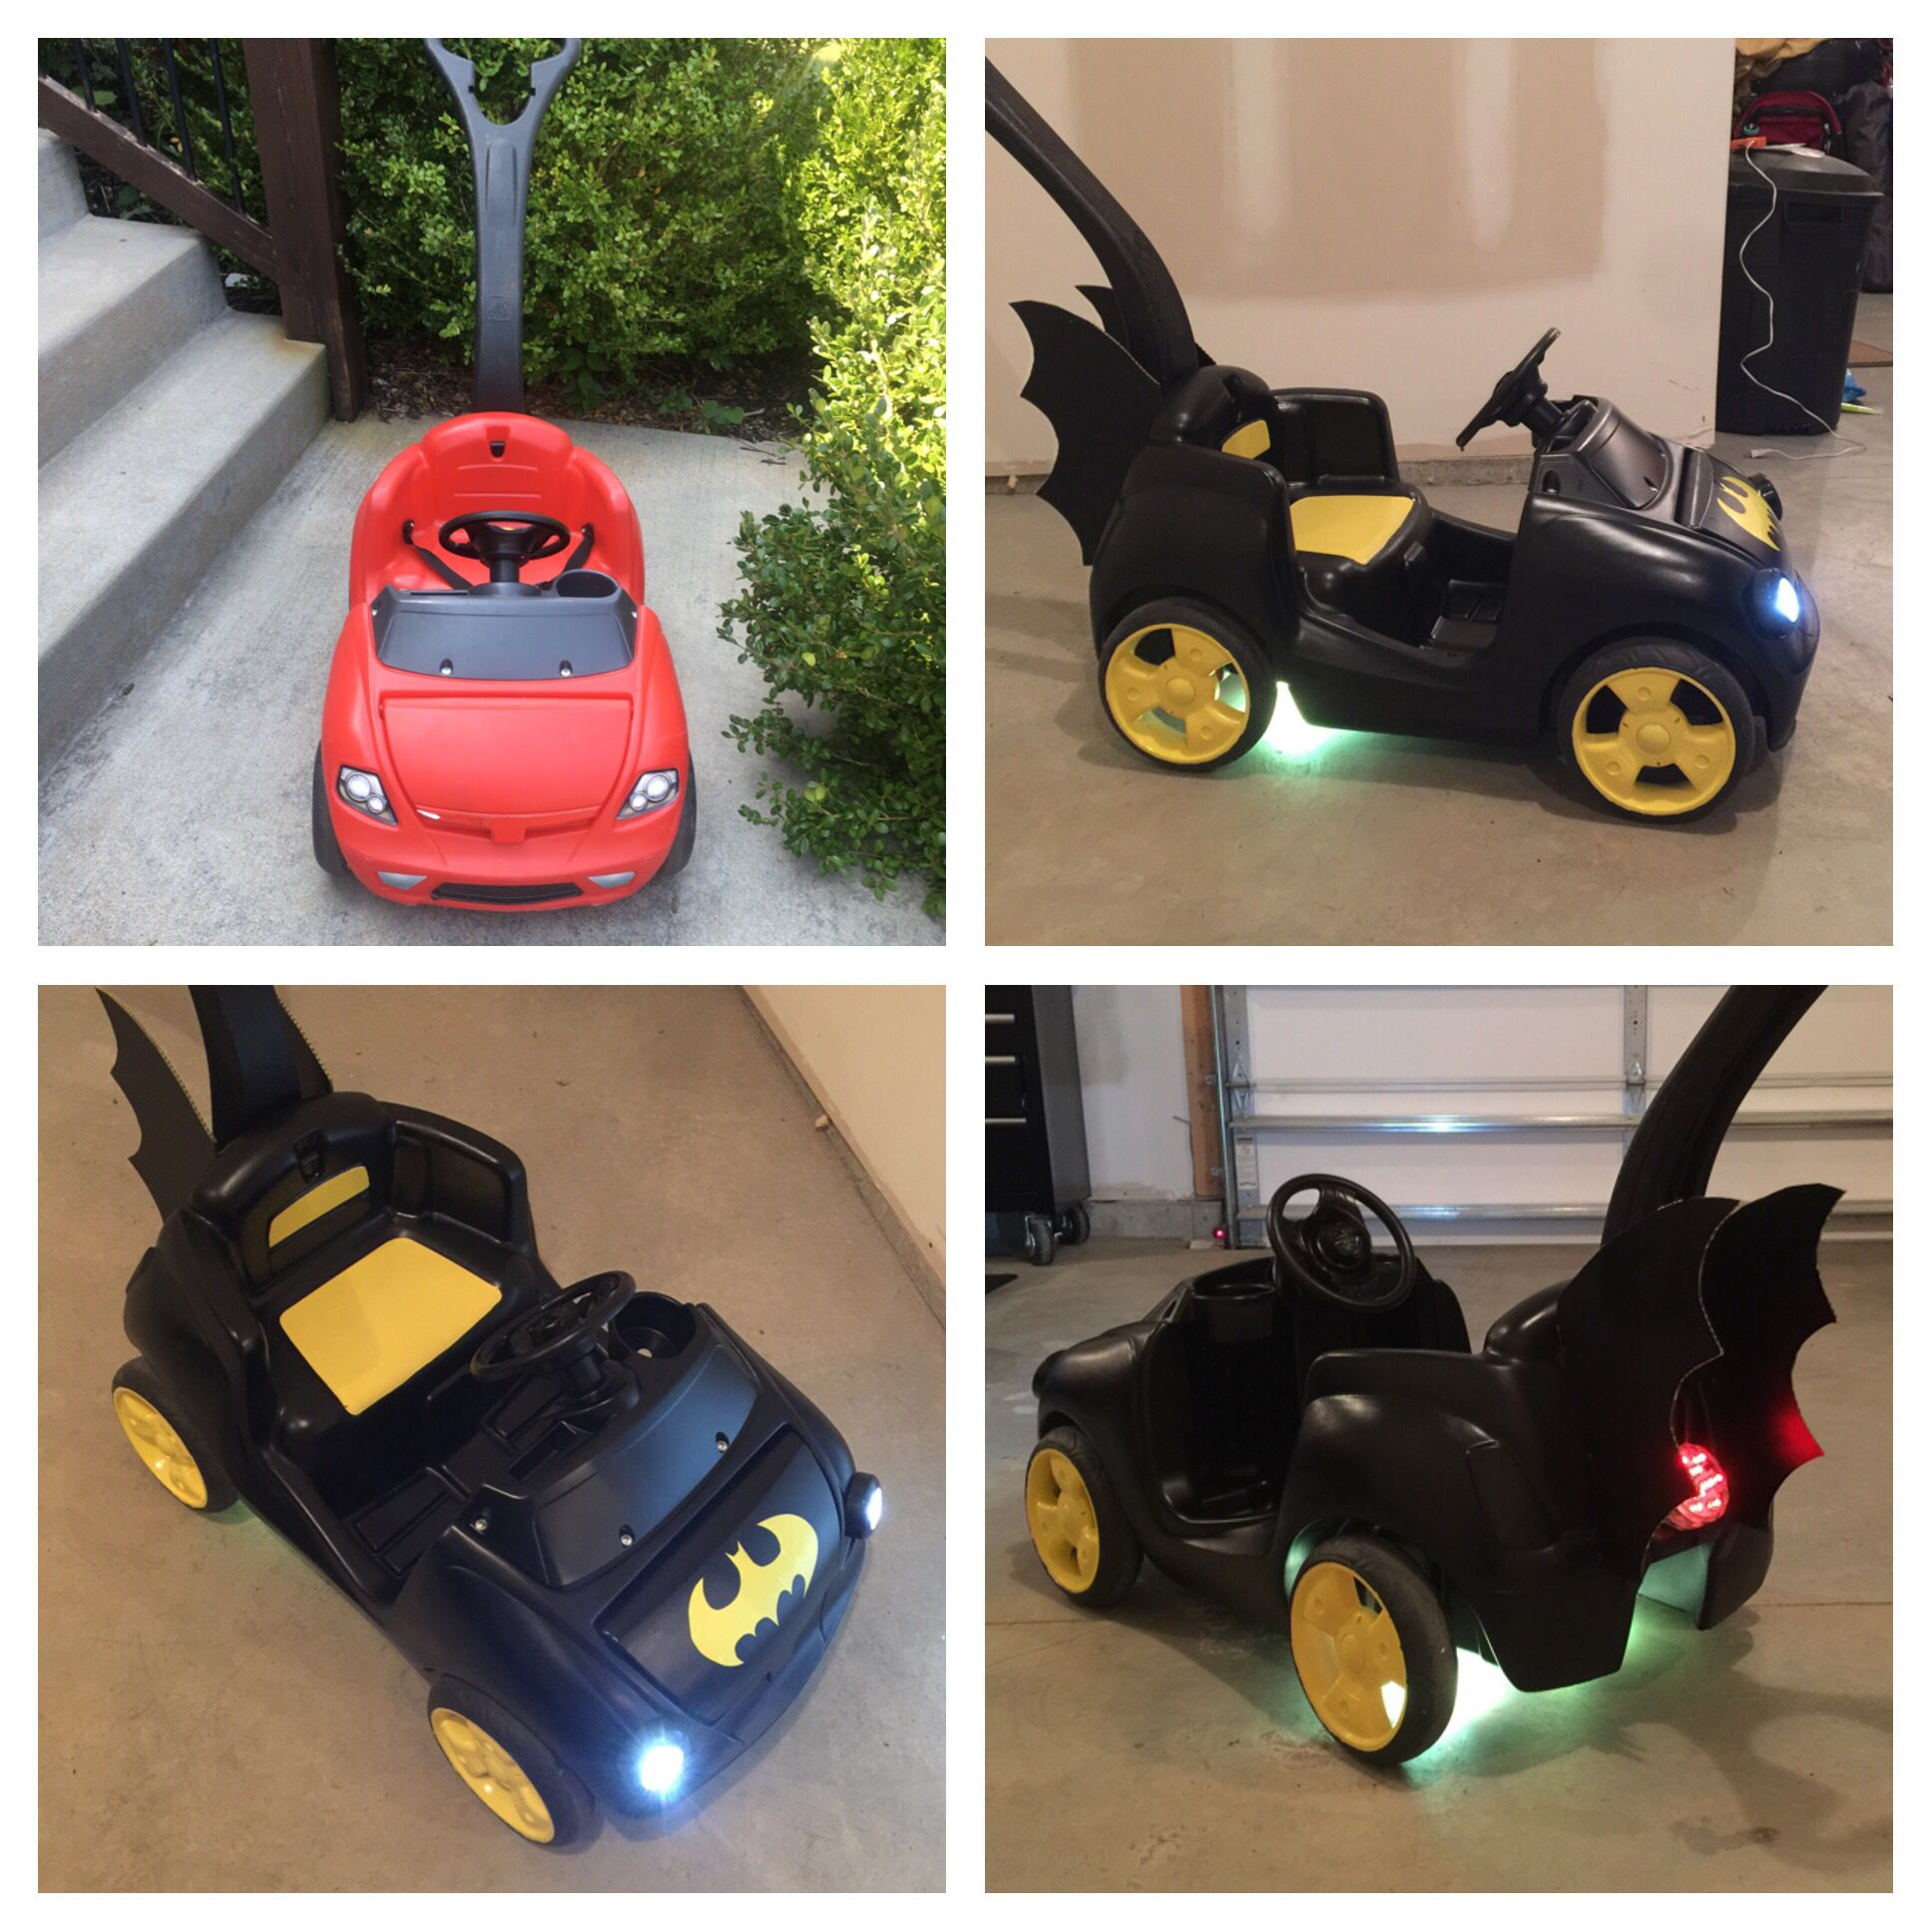 Halloween Bettwäsche Made This Bat Mobile For Halloween Craigslist Step2 Red Push Car